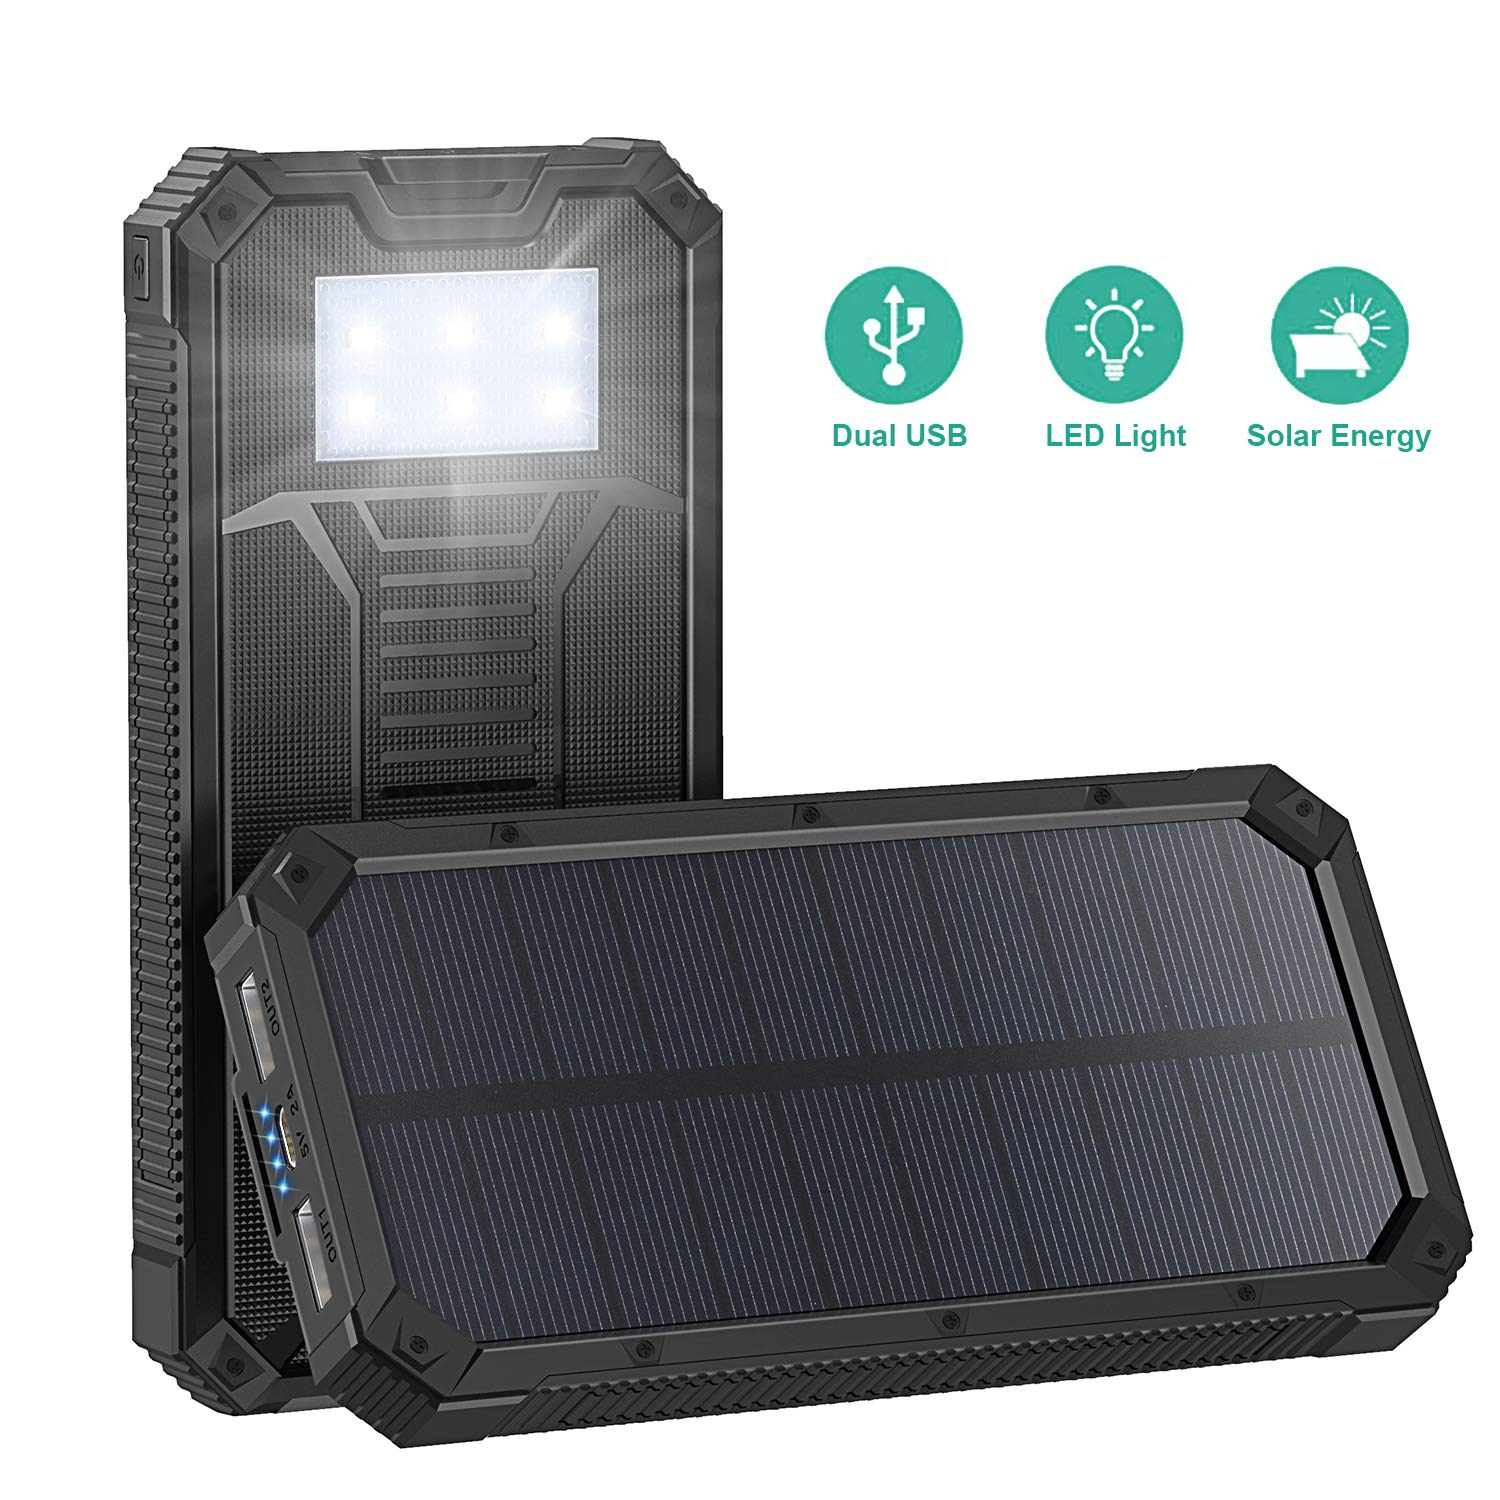 Solar Charger, STOON 15000mAh Solar Power Bank Phone Charger with Dual USB Ports for iPhone, iPad, Galaxy and More, Portable External Battery Pack with 6 LED Lights for Outdoor Camping Travelling by STOON